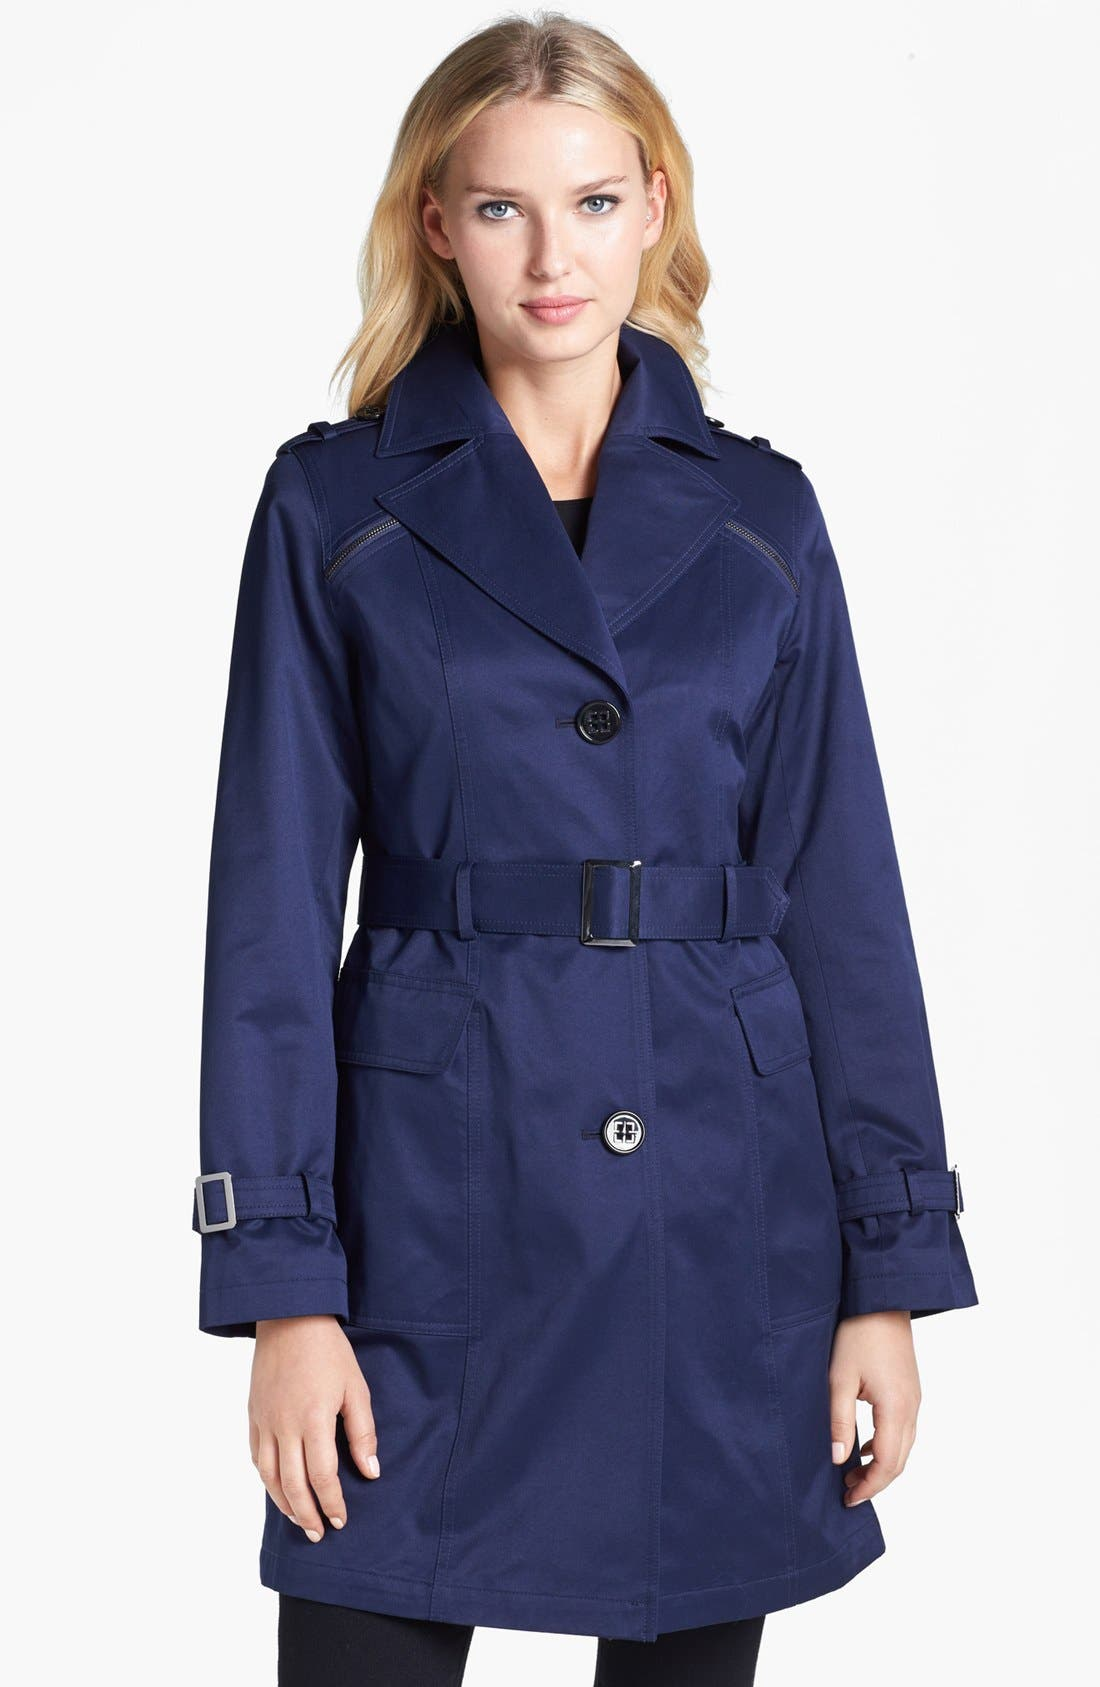 Main Image - Gallery Belted Trench Coat (Regular & Petite) (Nordstrom Online Exclusive)